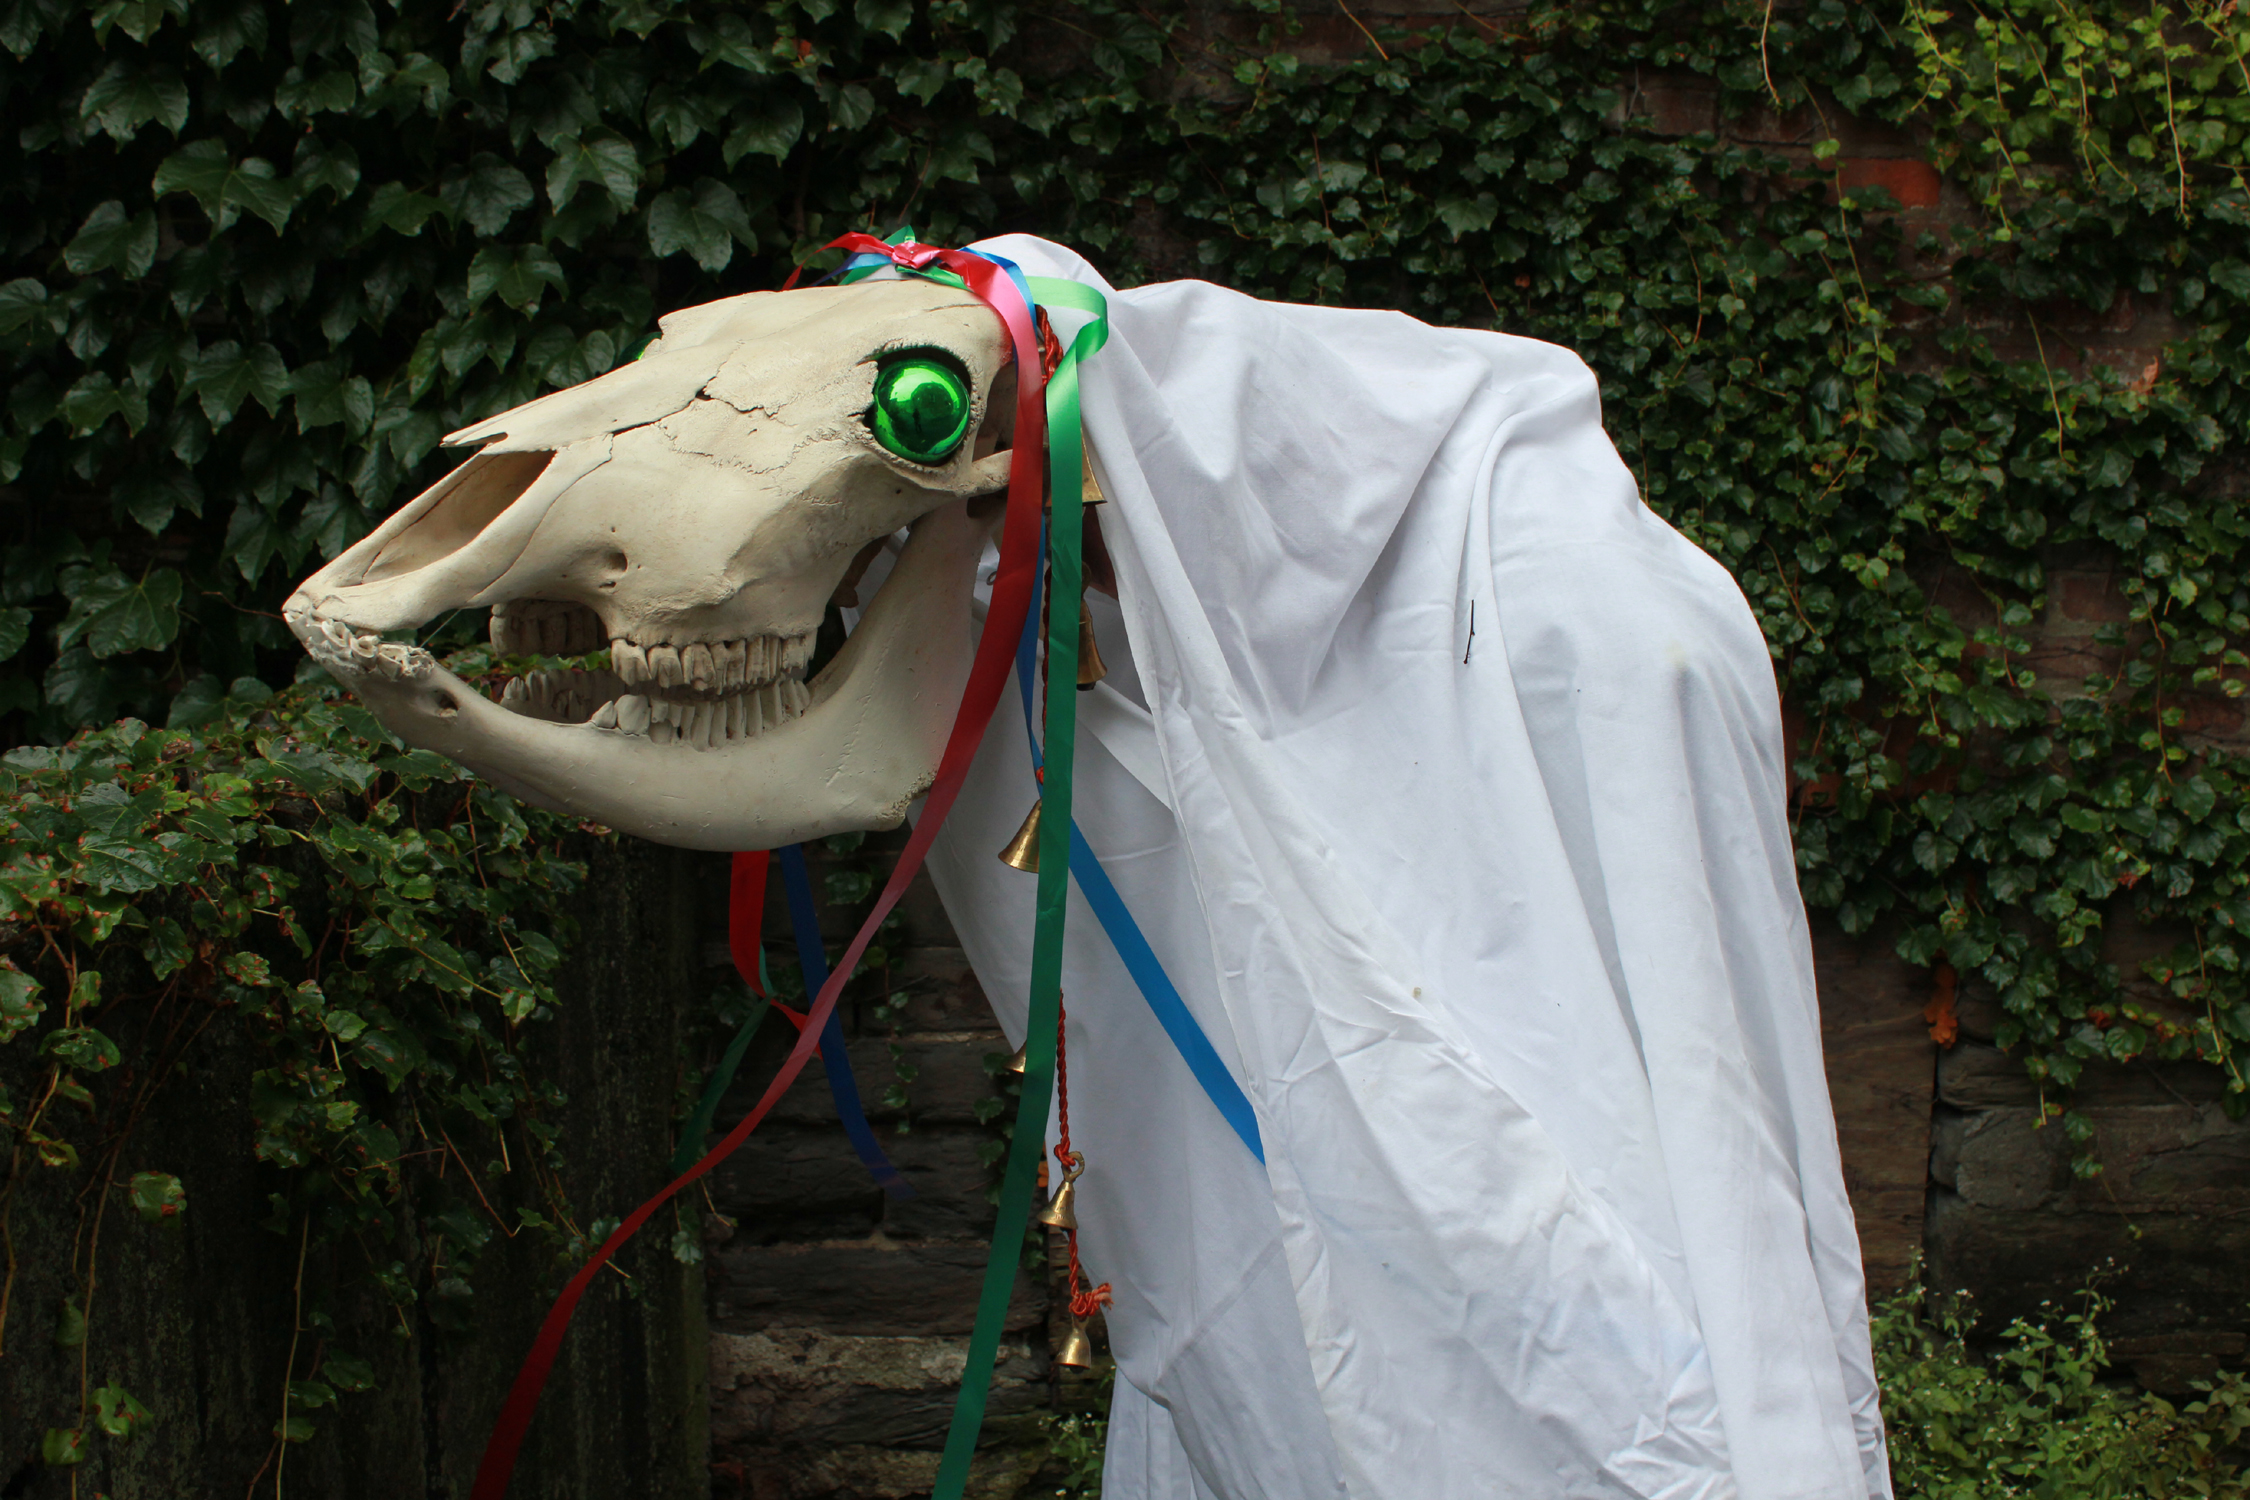 An image of the Mari Lwyd.